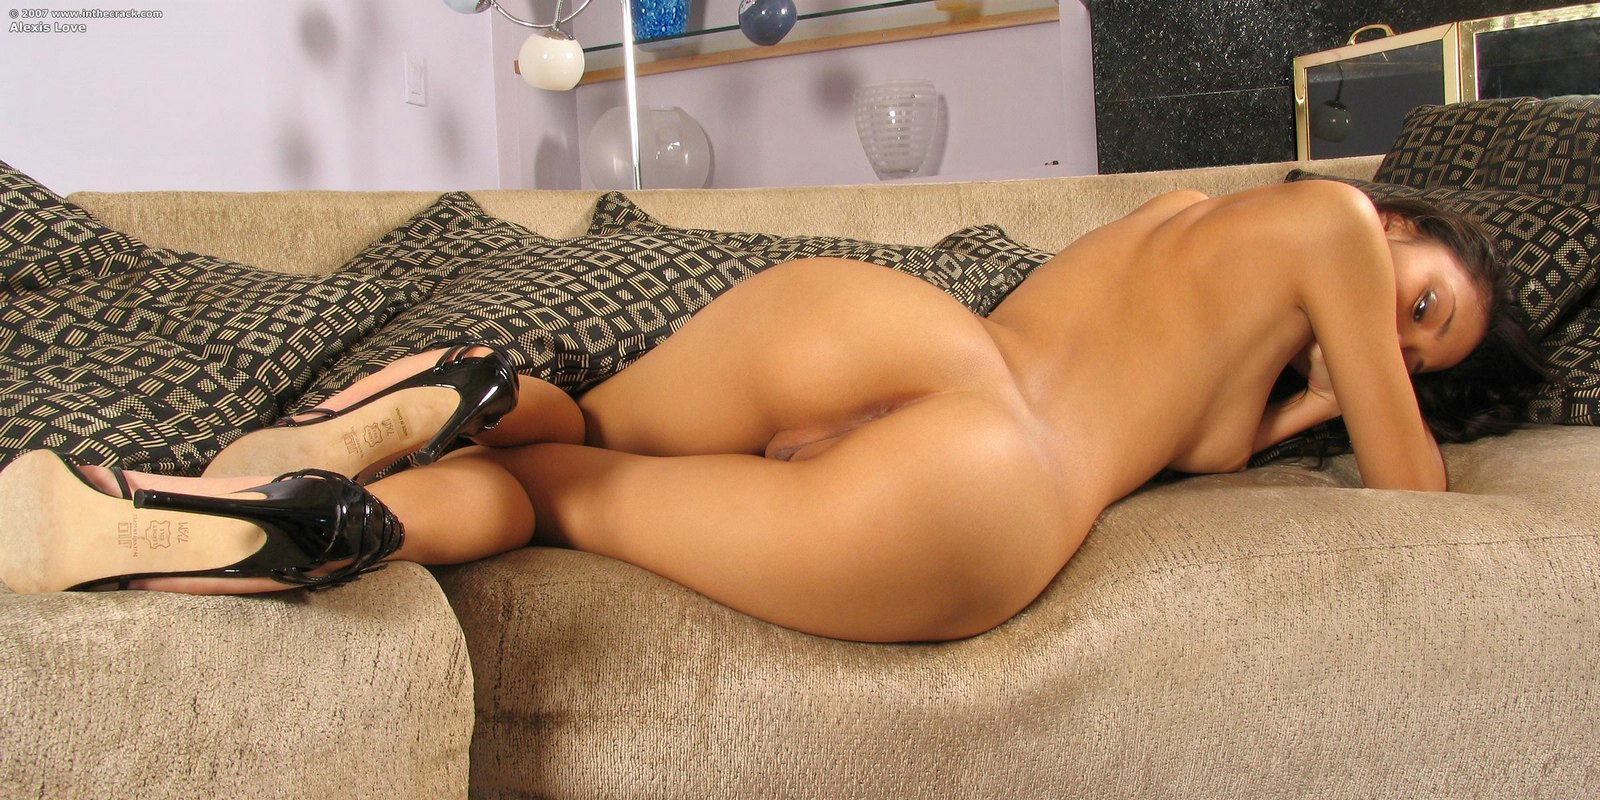 nude-girls-only-in-high-heels-mix-40